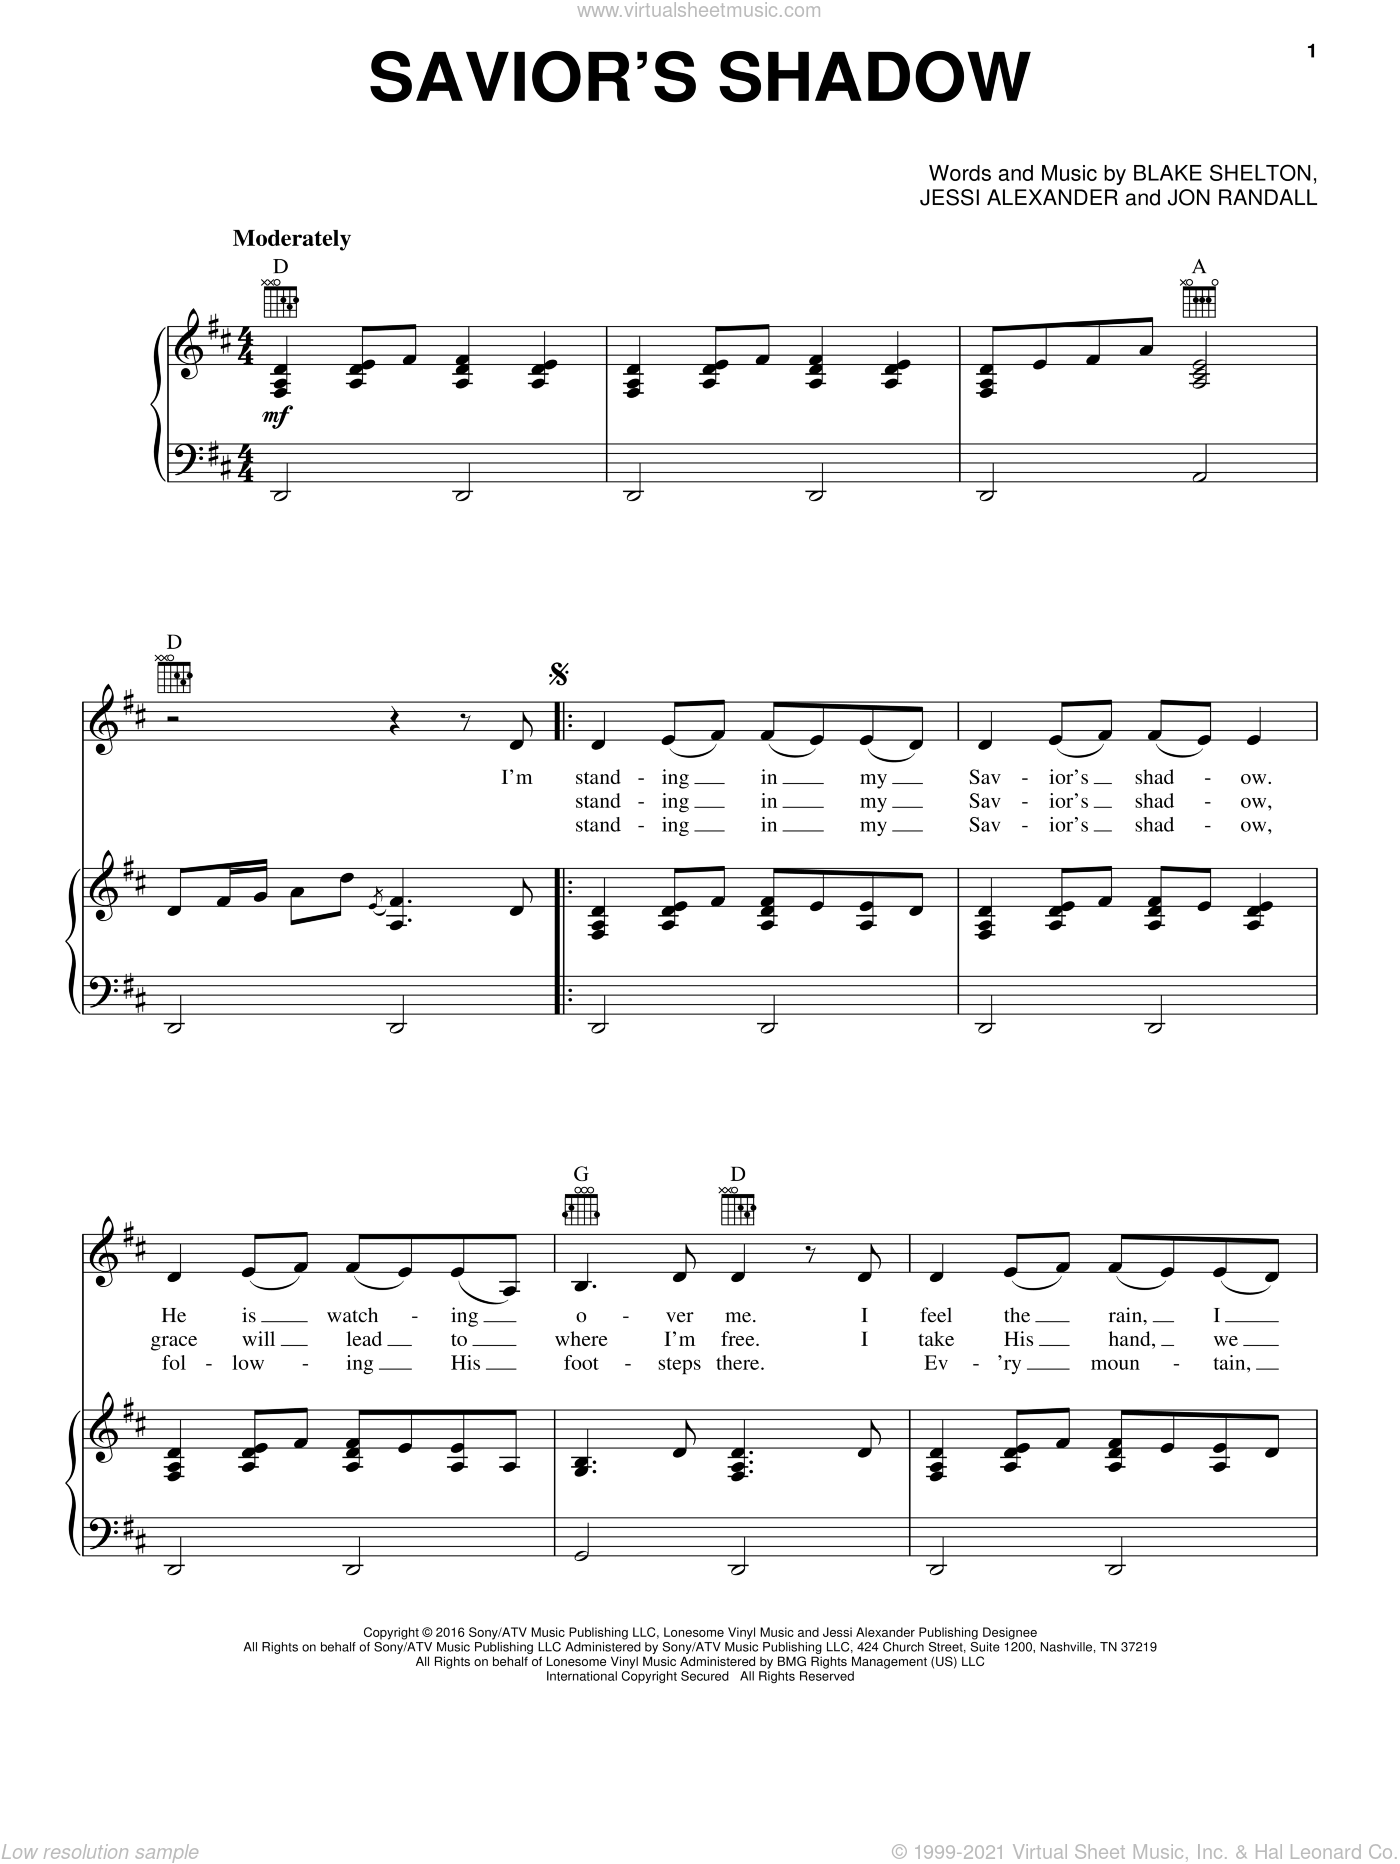 Savior's Shadow sheet music for voice, piano or guitar by Blake Shelton, Jessi Alexander and Jon Randall, intermediate. Score Image Preview.